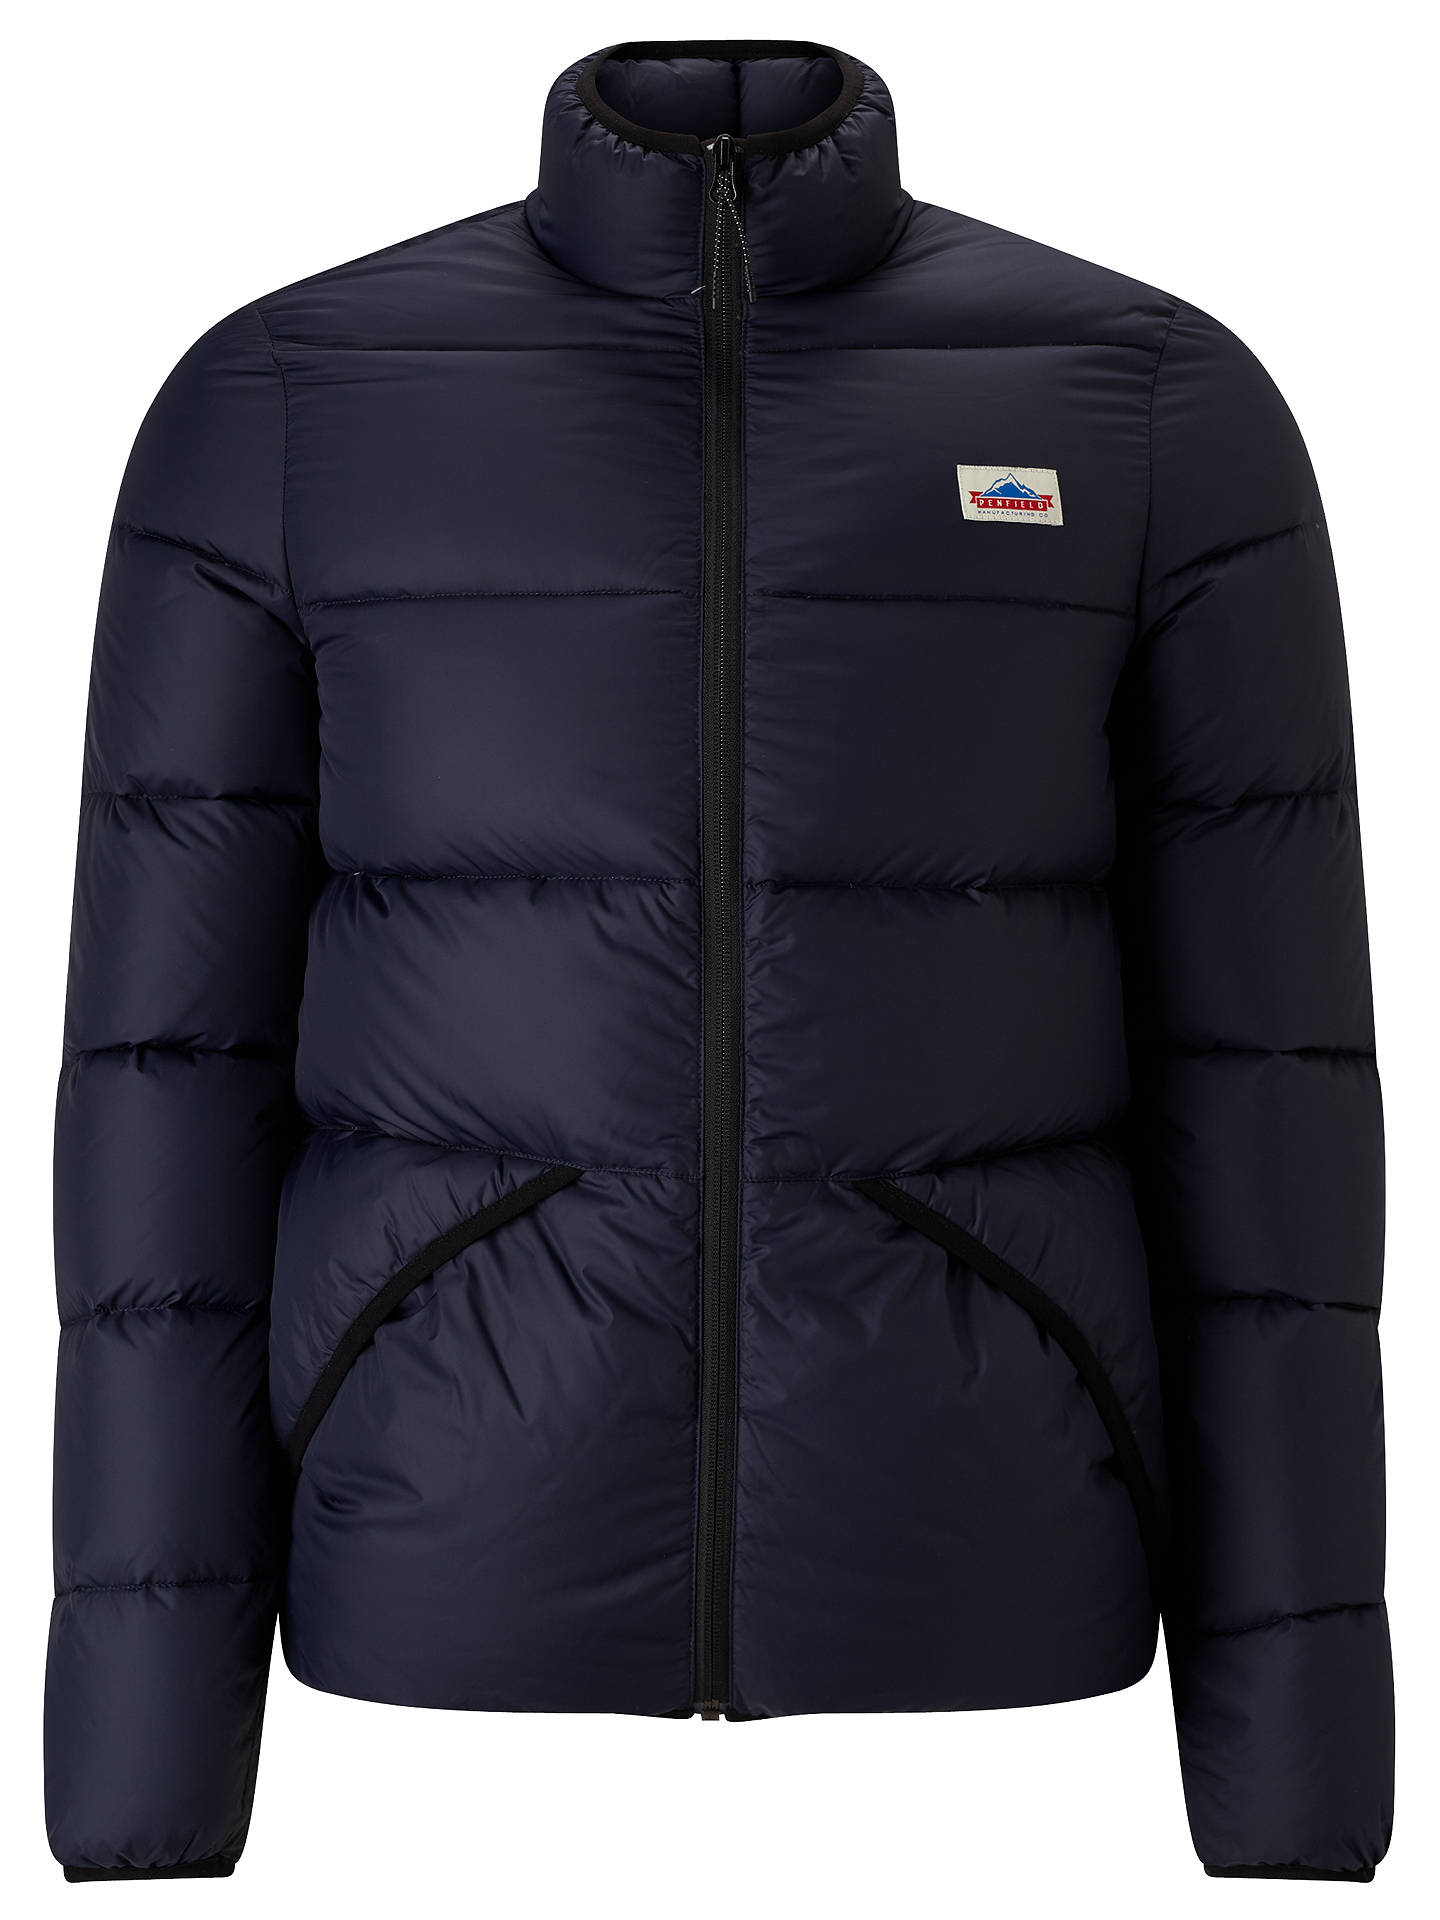 06ea3c2797a5 Penfield Walkabout Insulated Down Water-Resistant Puffer Jacket ...